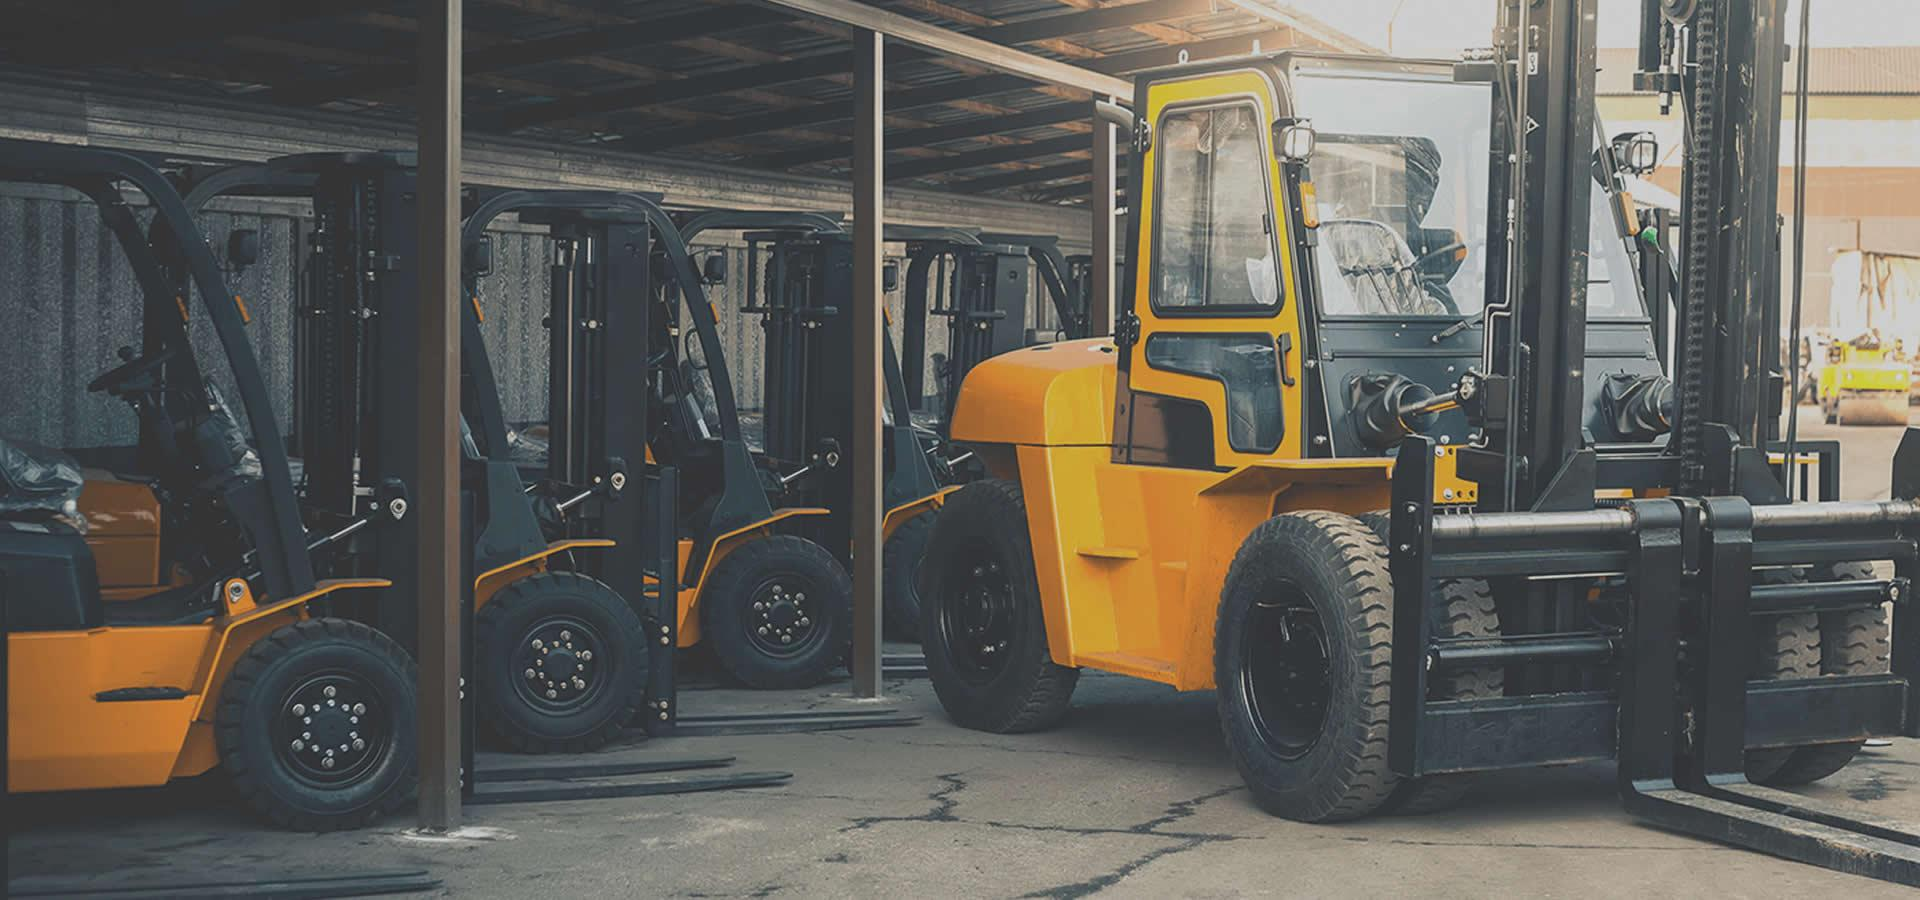 İstanbul Forklift Servisi